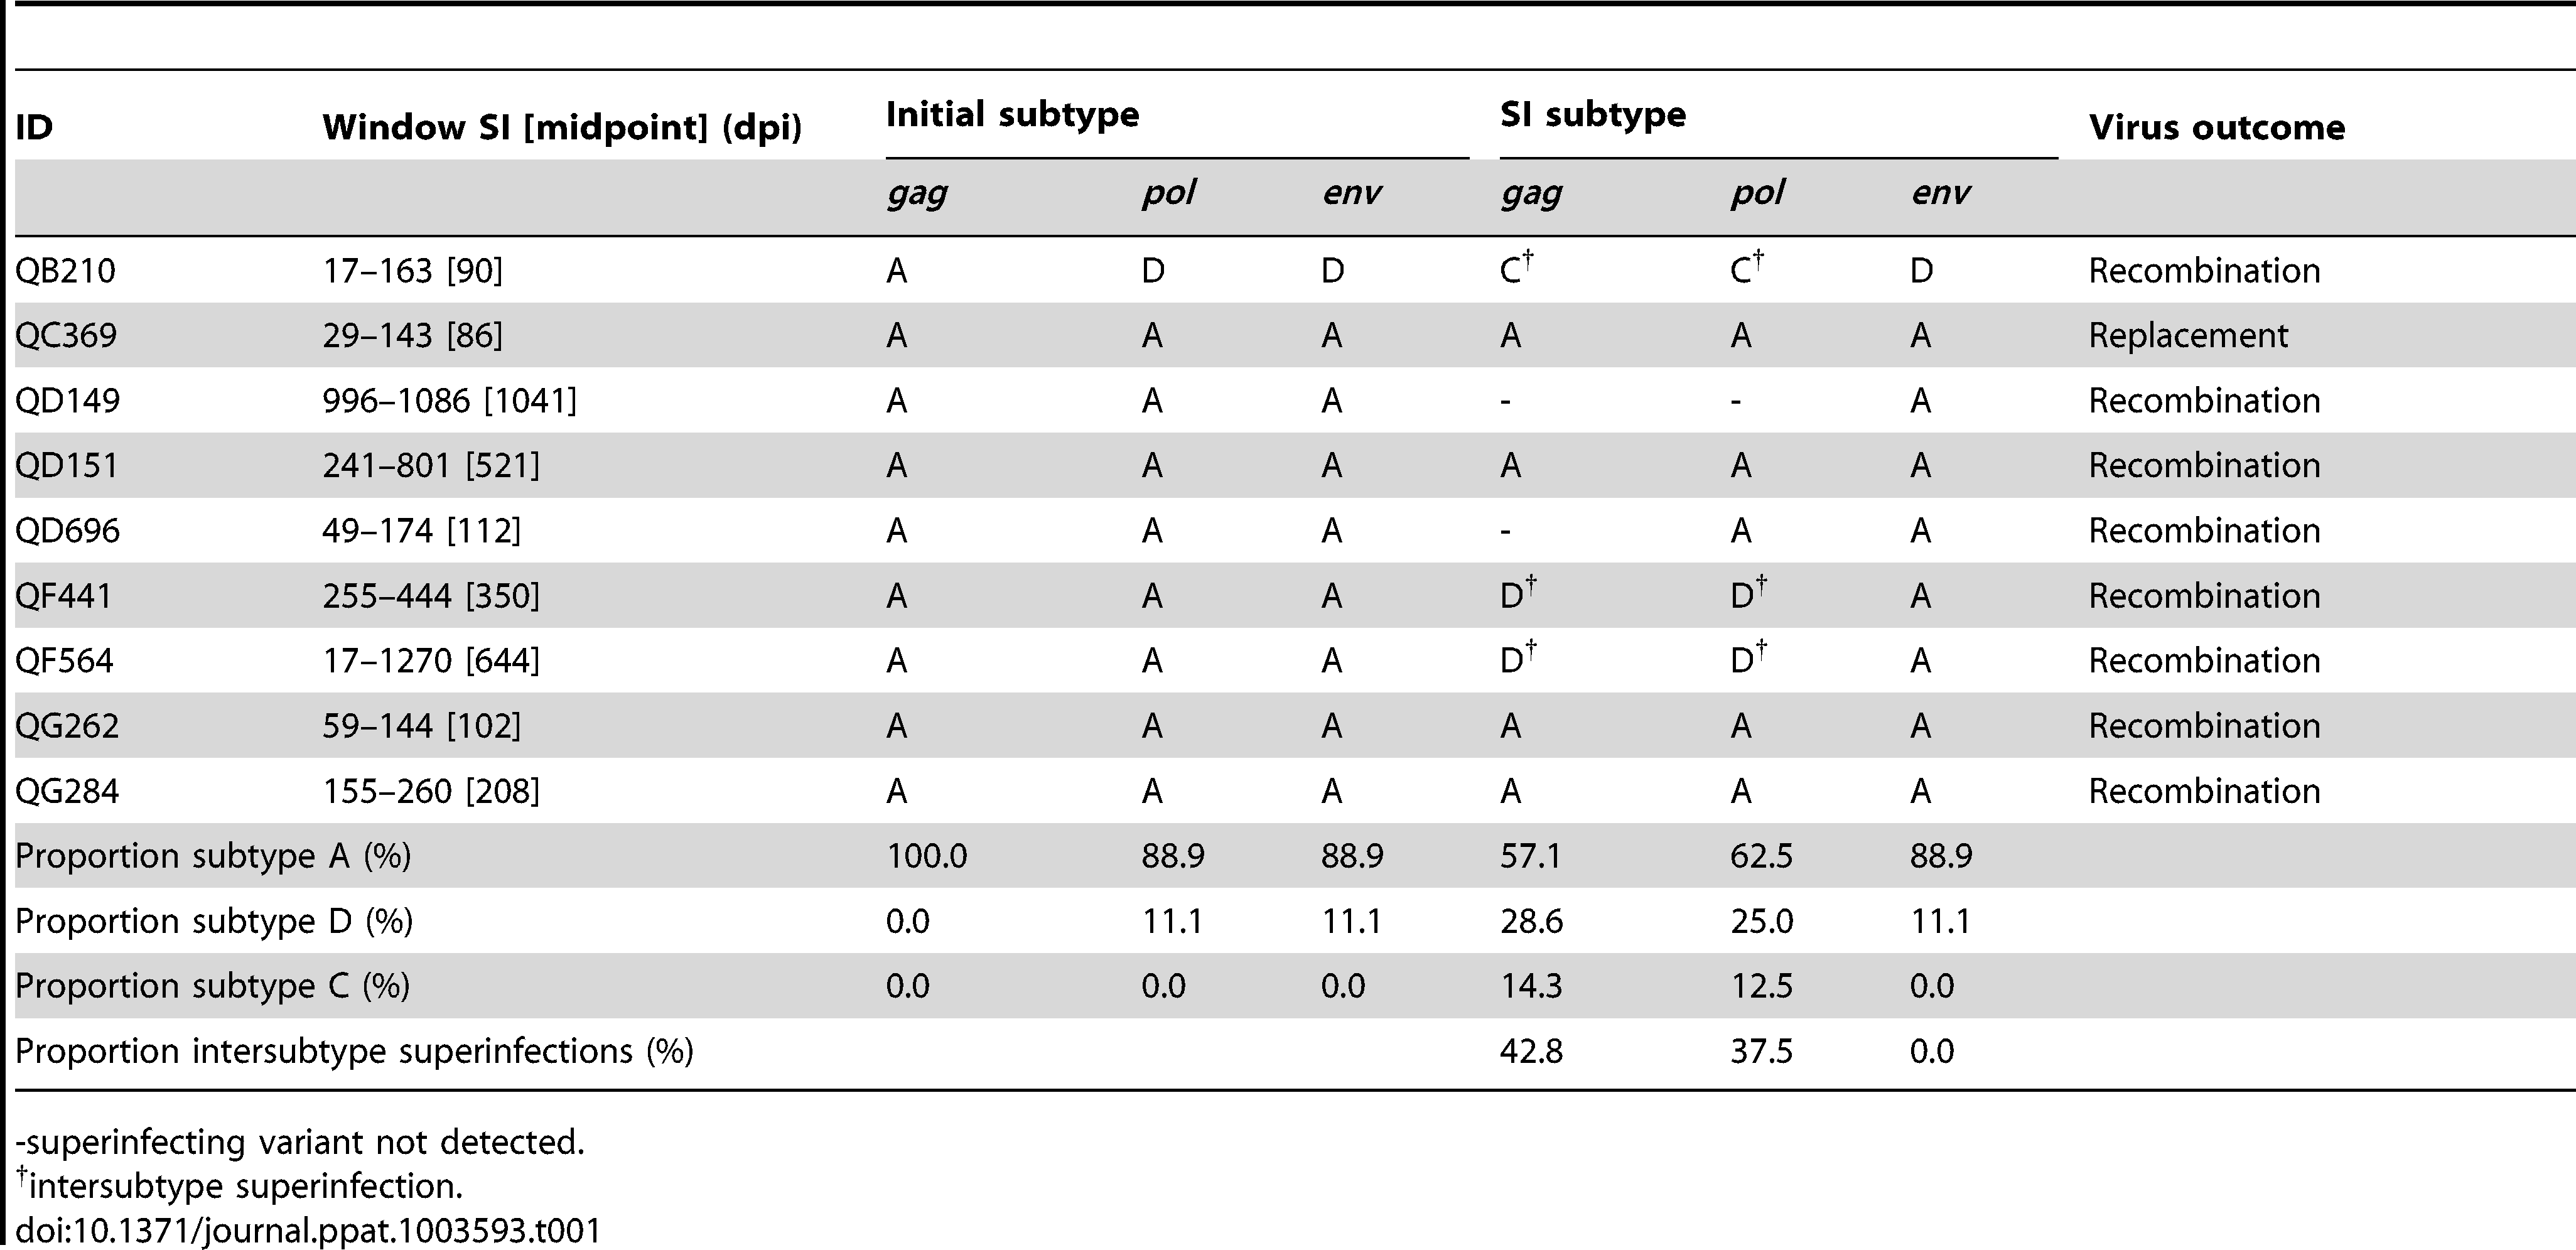 Summary of 9 new superinfection cases in the Mombasa cohort.